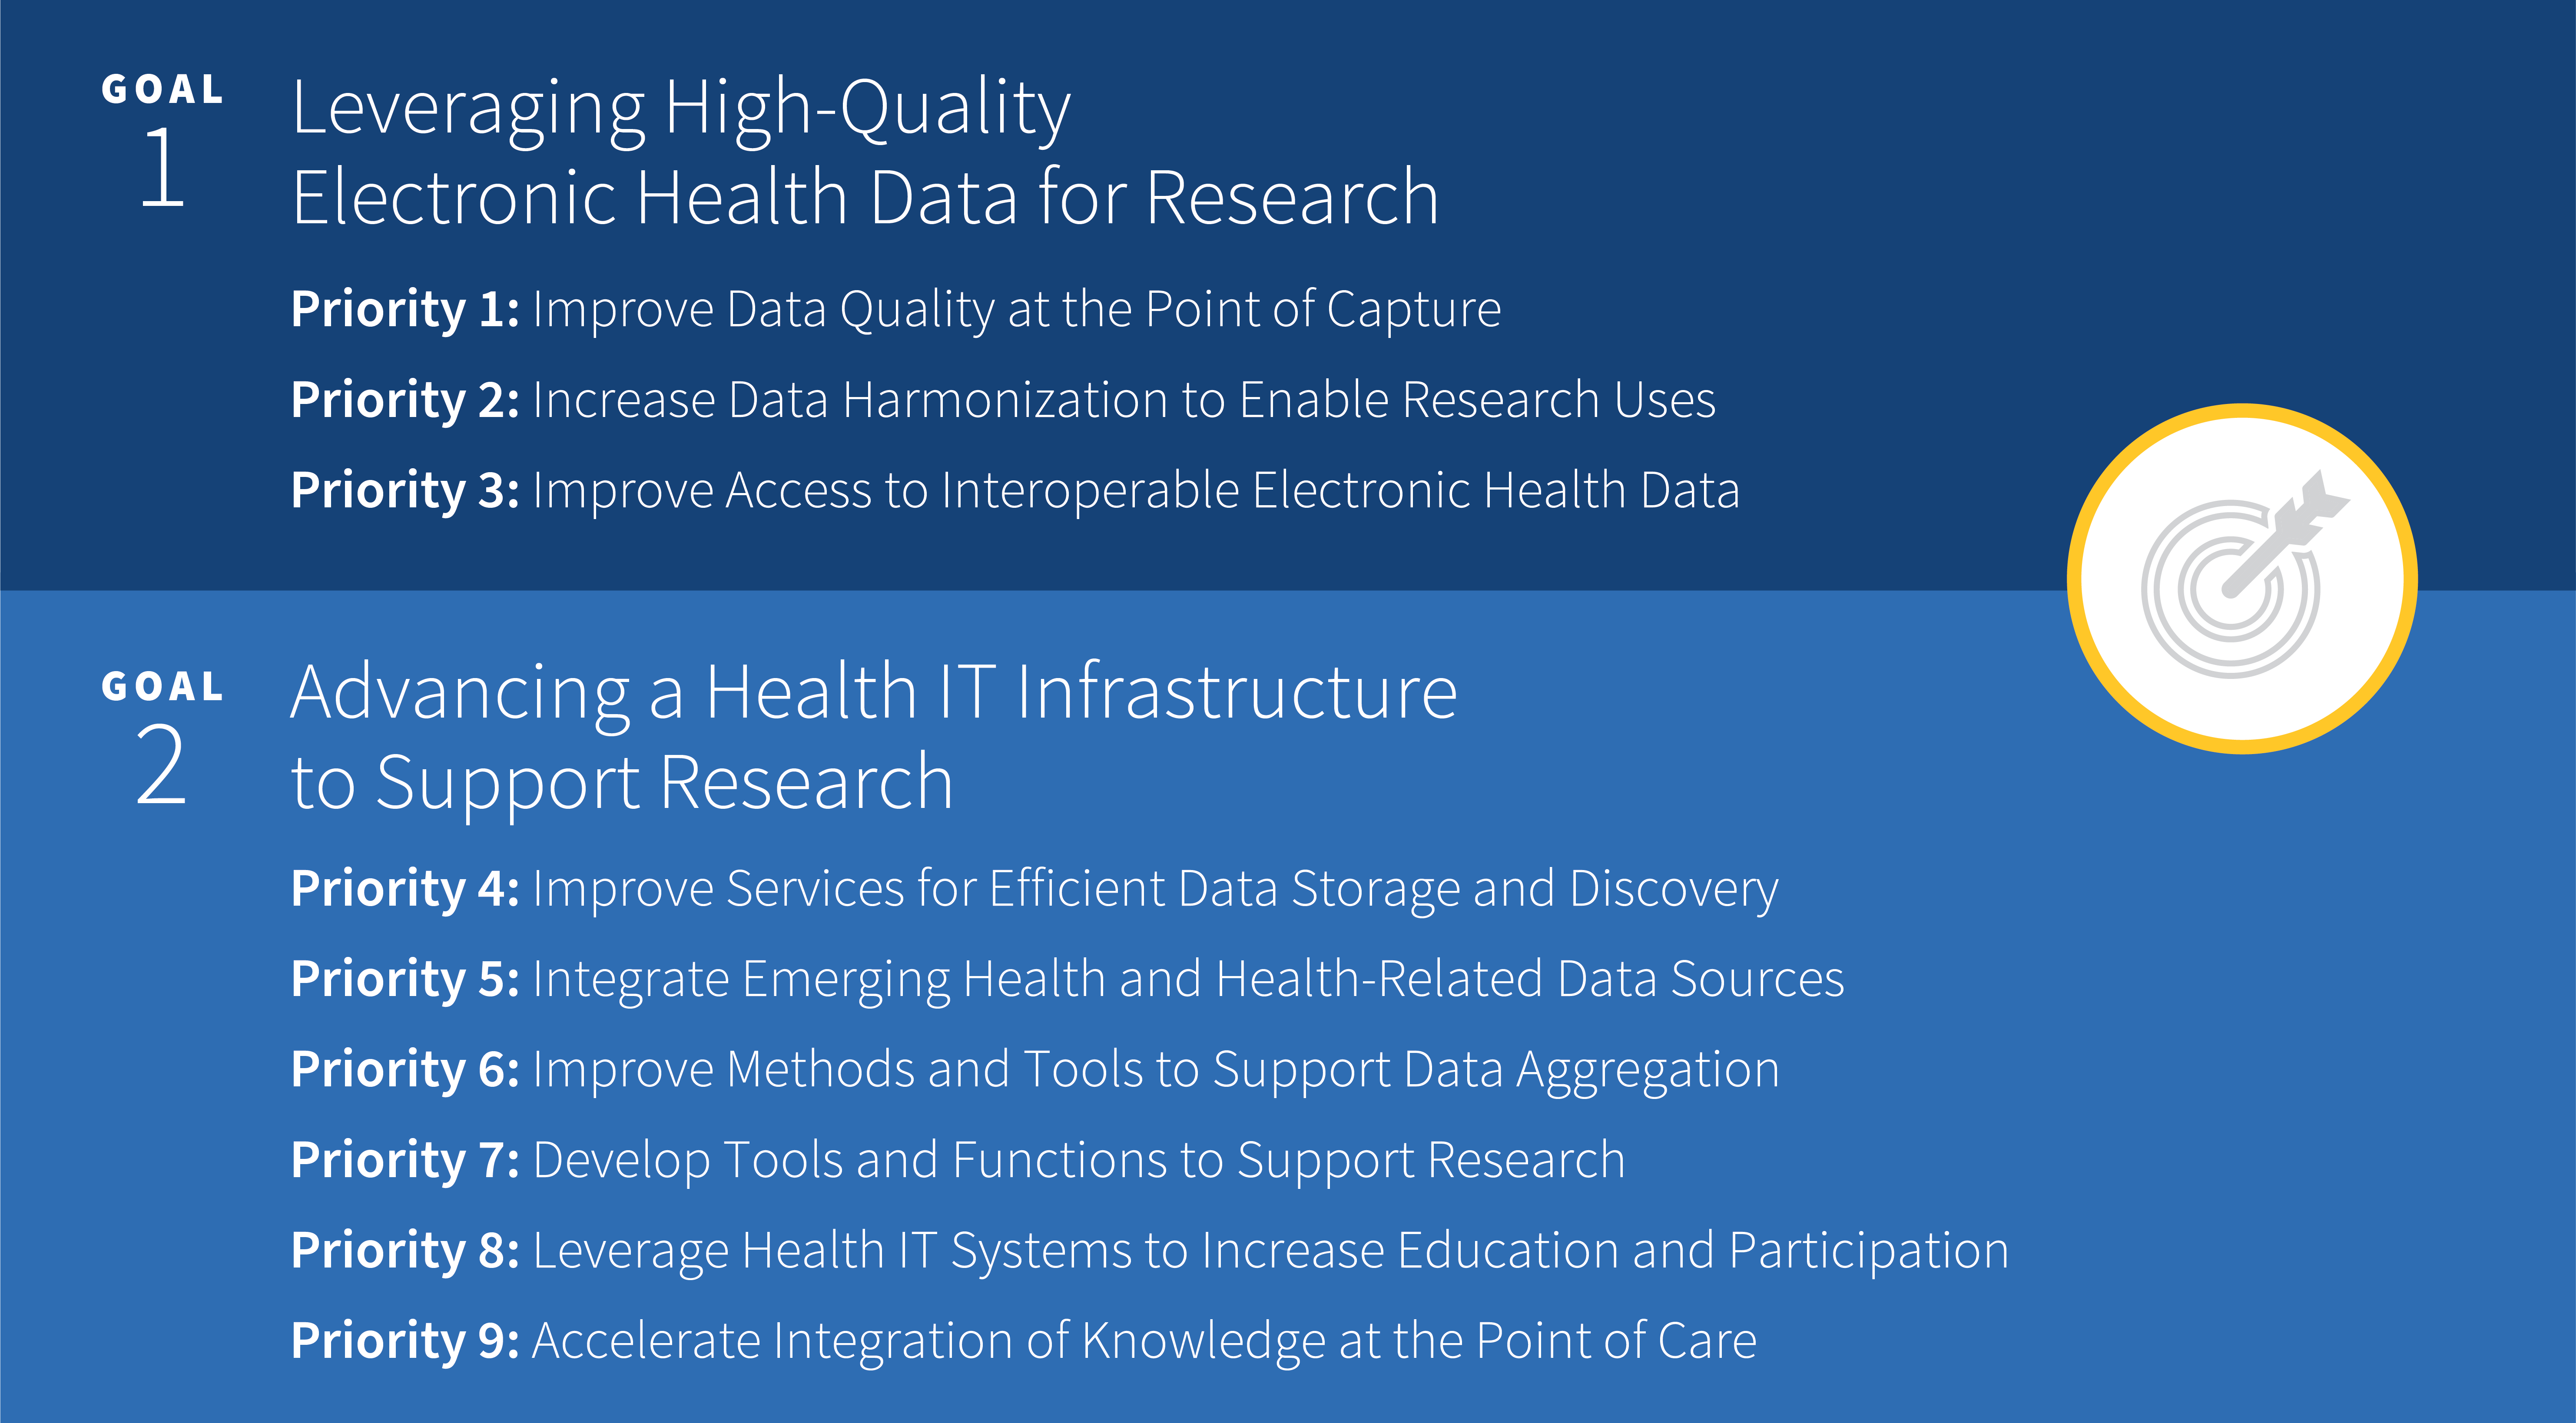 Image that lays out the goals for the National Health IT Priorities for Research: A Policy and Development Agenda Goal 1: Leveraging High-Quality Electronic Health Data for Research Priority 1: Improve Data Quality at the Point of Capture Priority 2: Increase Data Harmonization to Enable Research Uses Priority 3: Improve Access to Interoperable Electronic Health Data Goal 2: Advancing a Health IT Infrastructure to Support Research Priority 4: Improve Services for Efficient Data Storage and Discovery Priority 5: Integrate Emerging Health and Health-Related Data Sources Priority 6: Improve Methods and Tools to Support Data Aggregation Priority 7: Develop Tools and Functions to Support Research Priority 8: Leverage Health IT Systems to Increase Education and Participation Priority 9: Accelerate Integration of Knowledge at the Point of Care